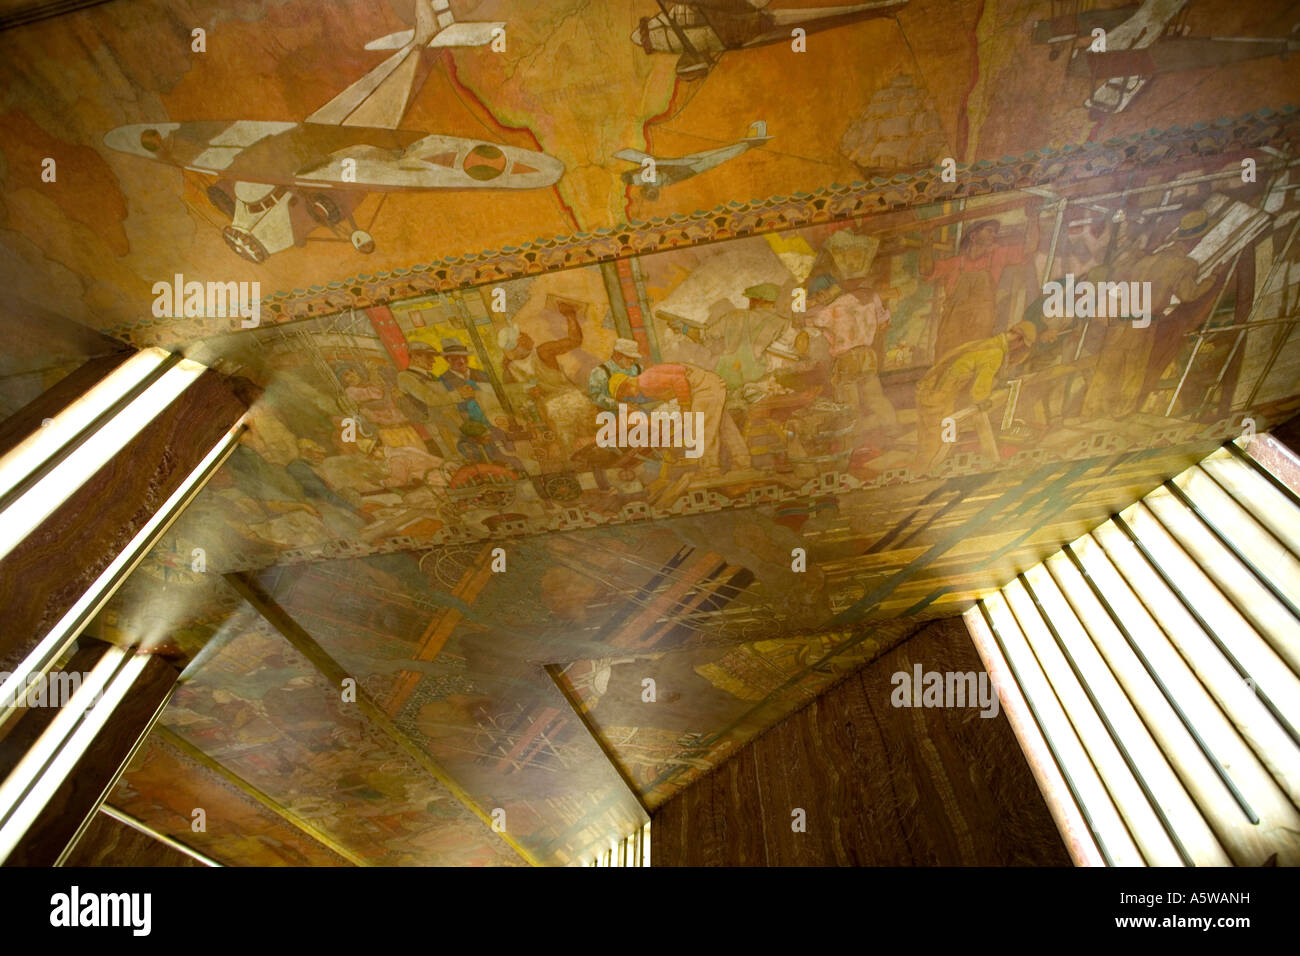 The painted ceiling by Edward Turnball  in the lobby of the Chrysler Building in New York City USA 2007 - Stock Image